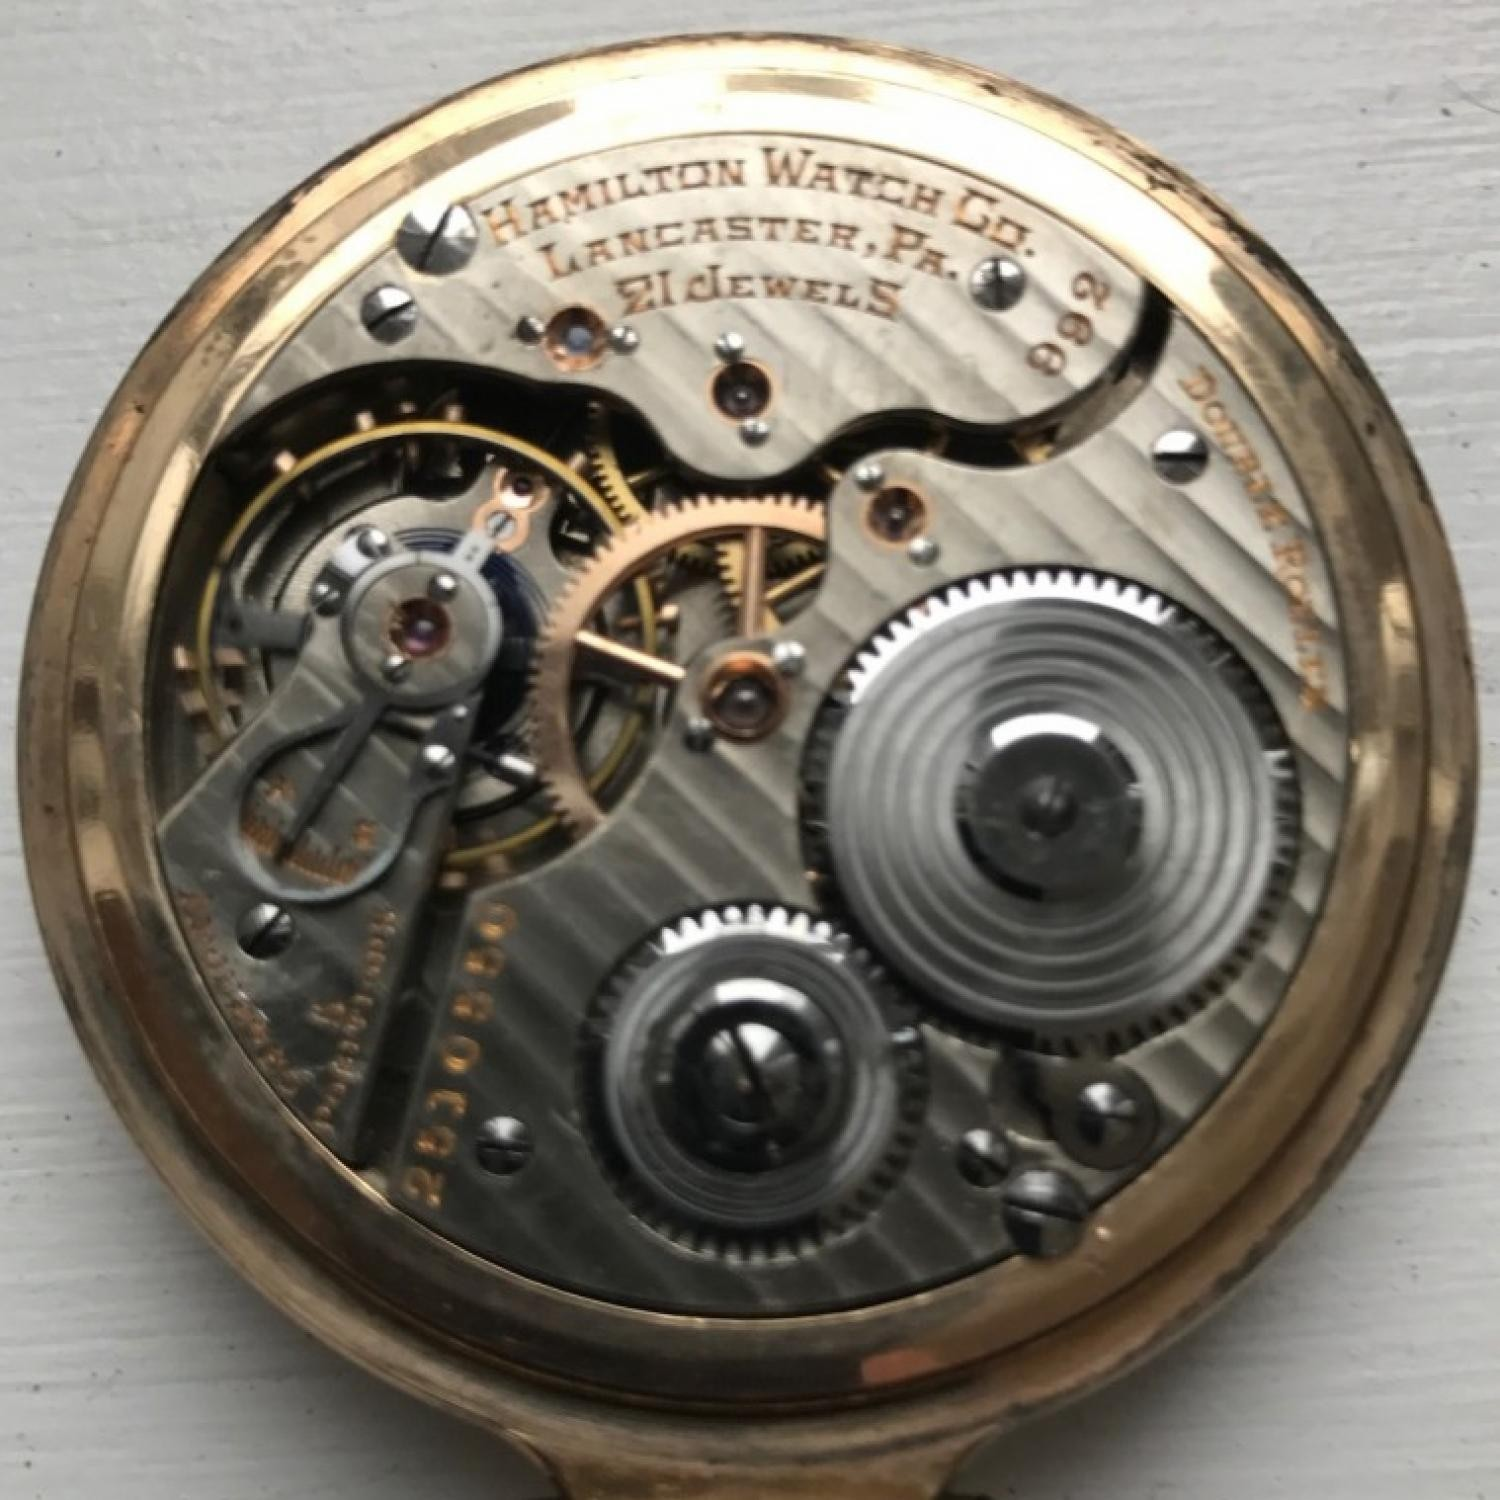 Image of Hamilton 992 #2510550 Movement